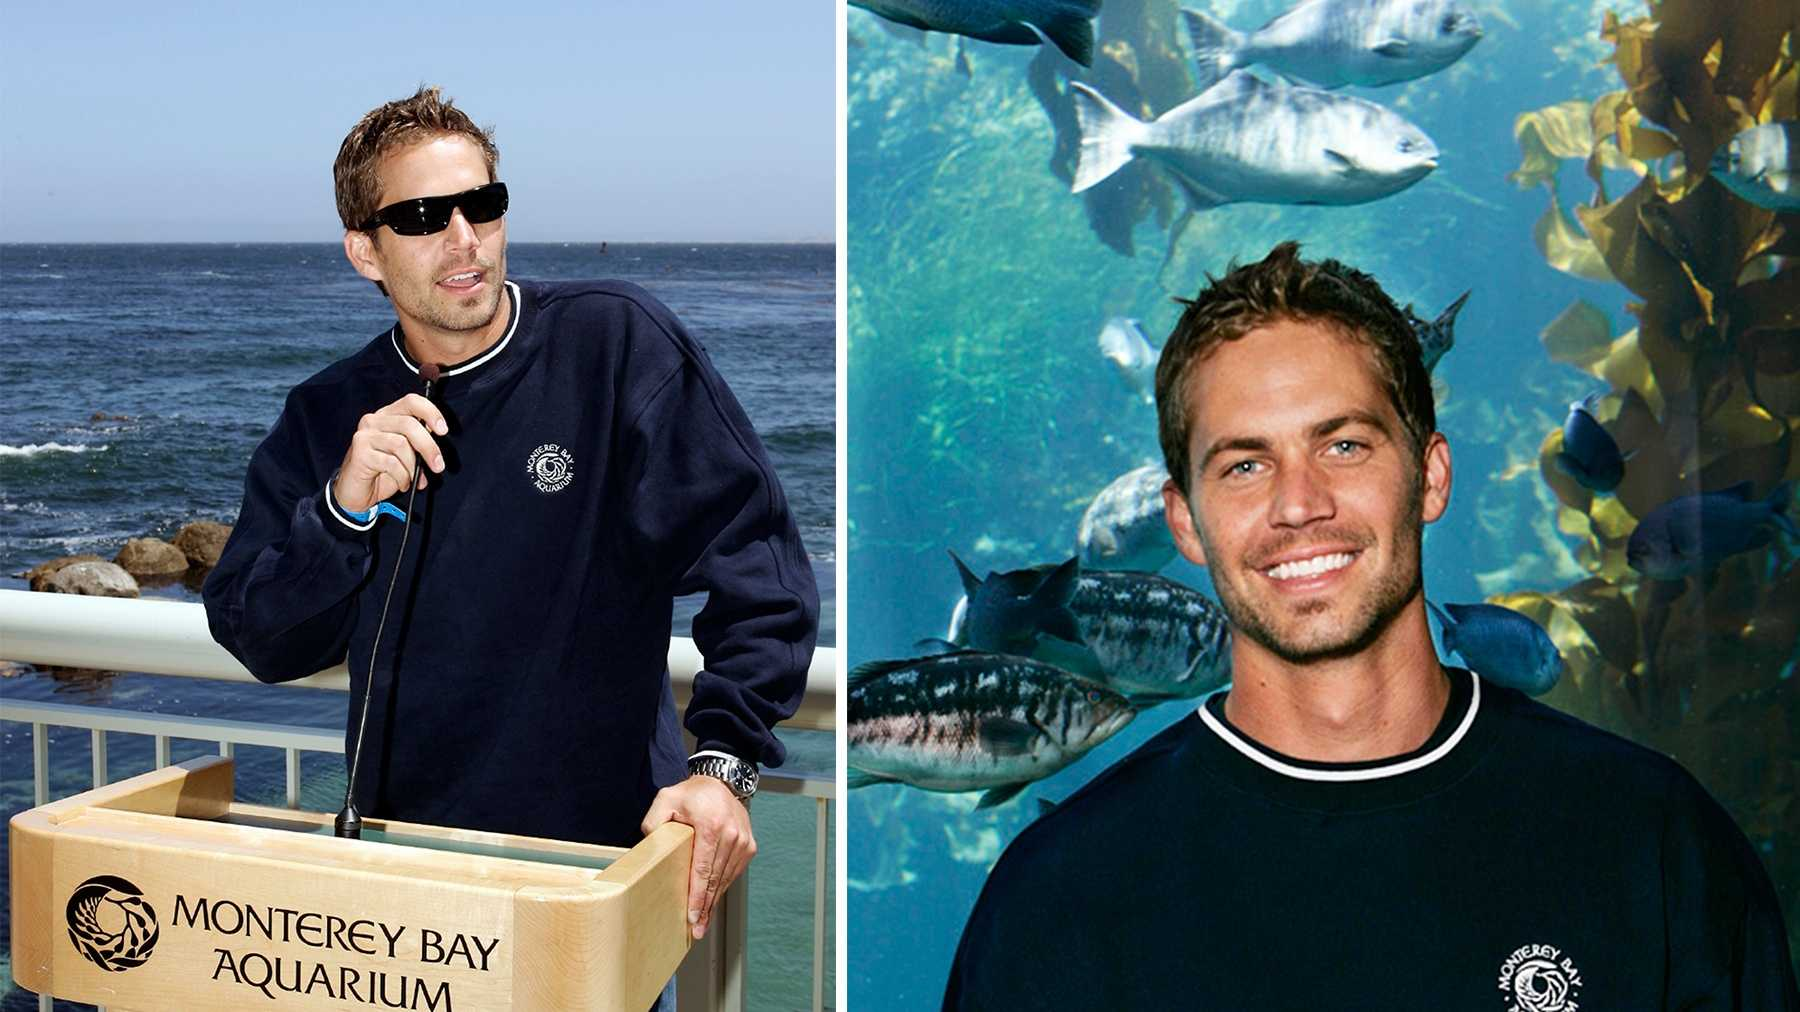 Paul Walker is seen speaking at the Monterey Bay Aquarium.